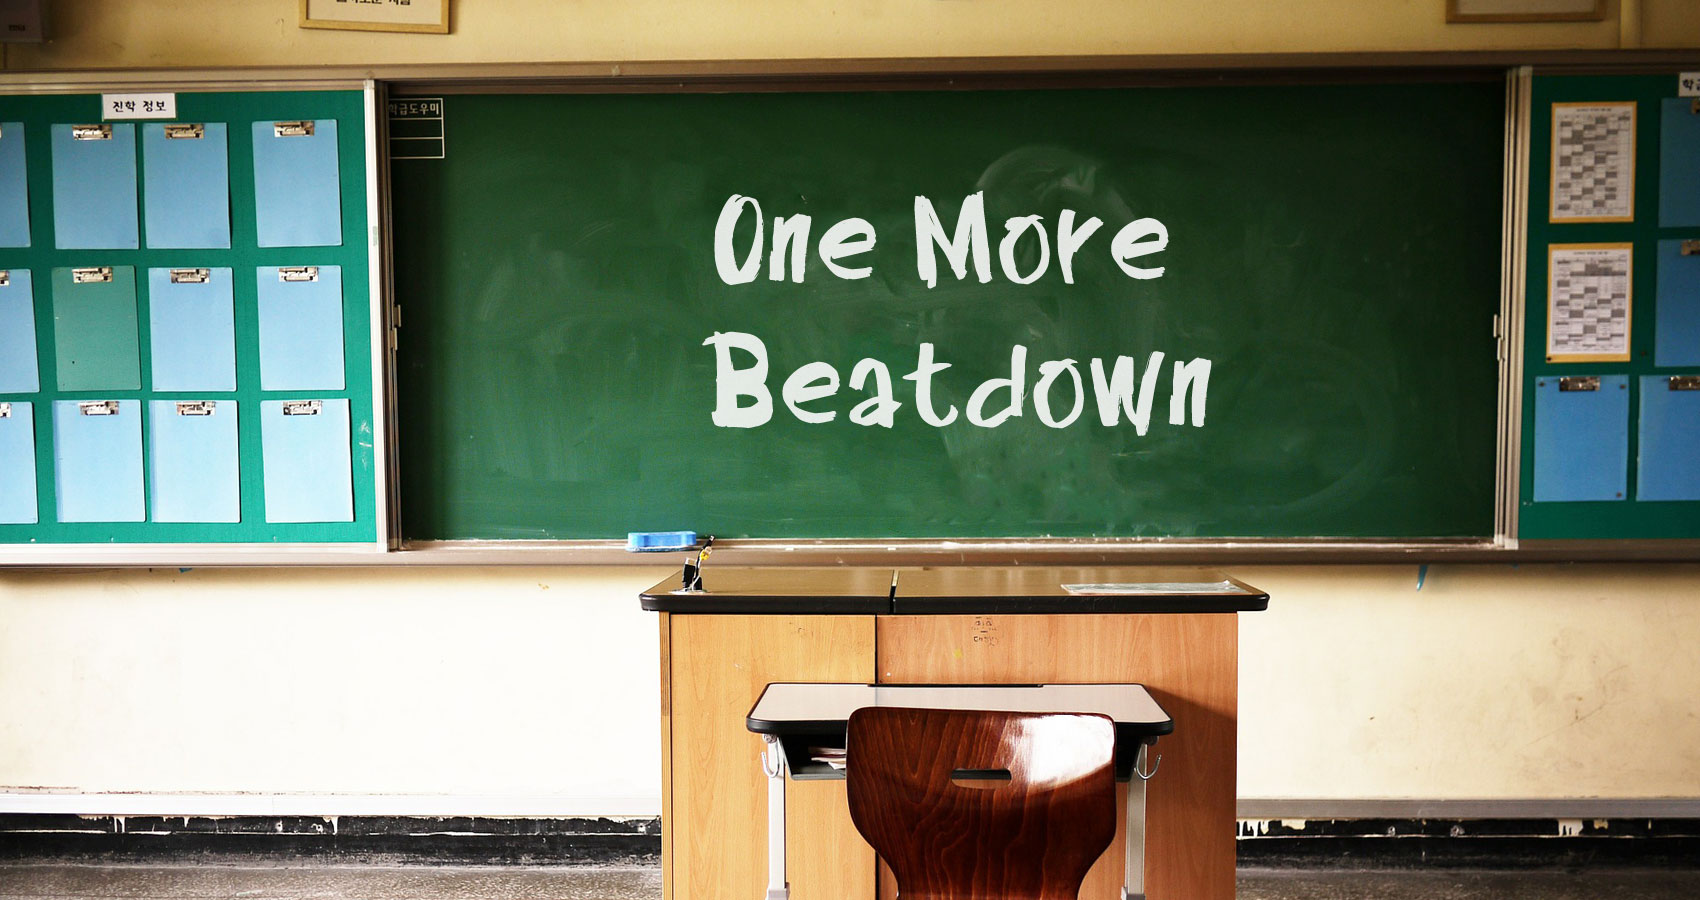 One More Beatdown, written by Shawn M. Klimek at Spillwords.com